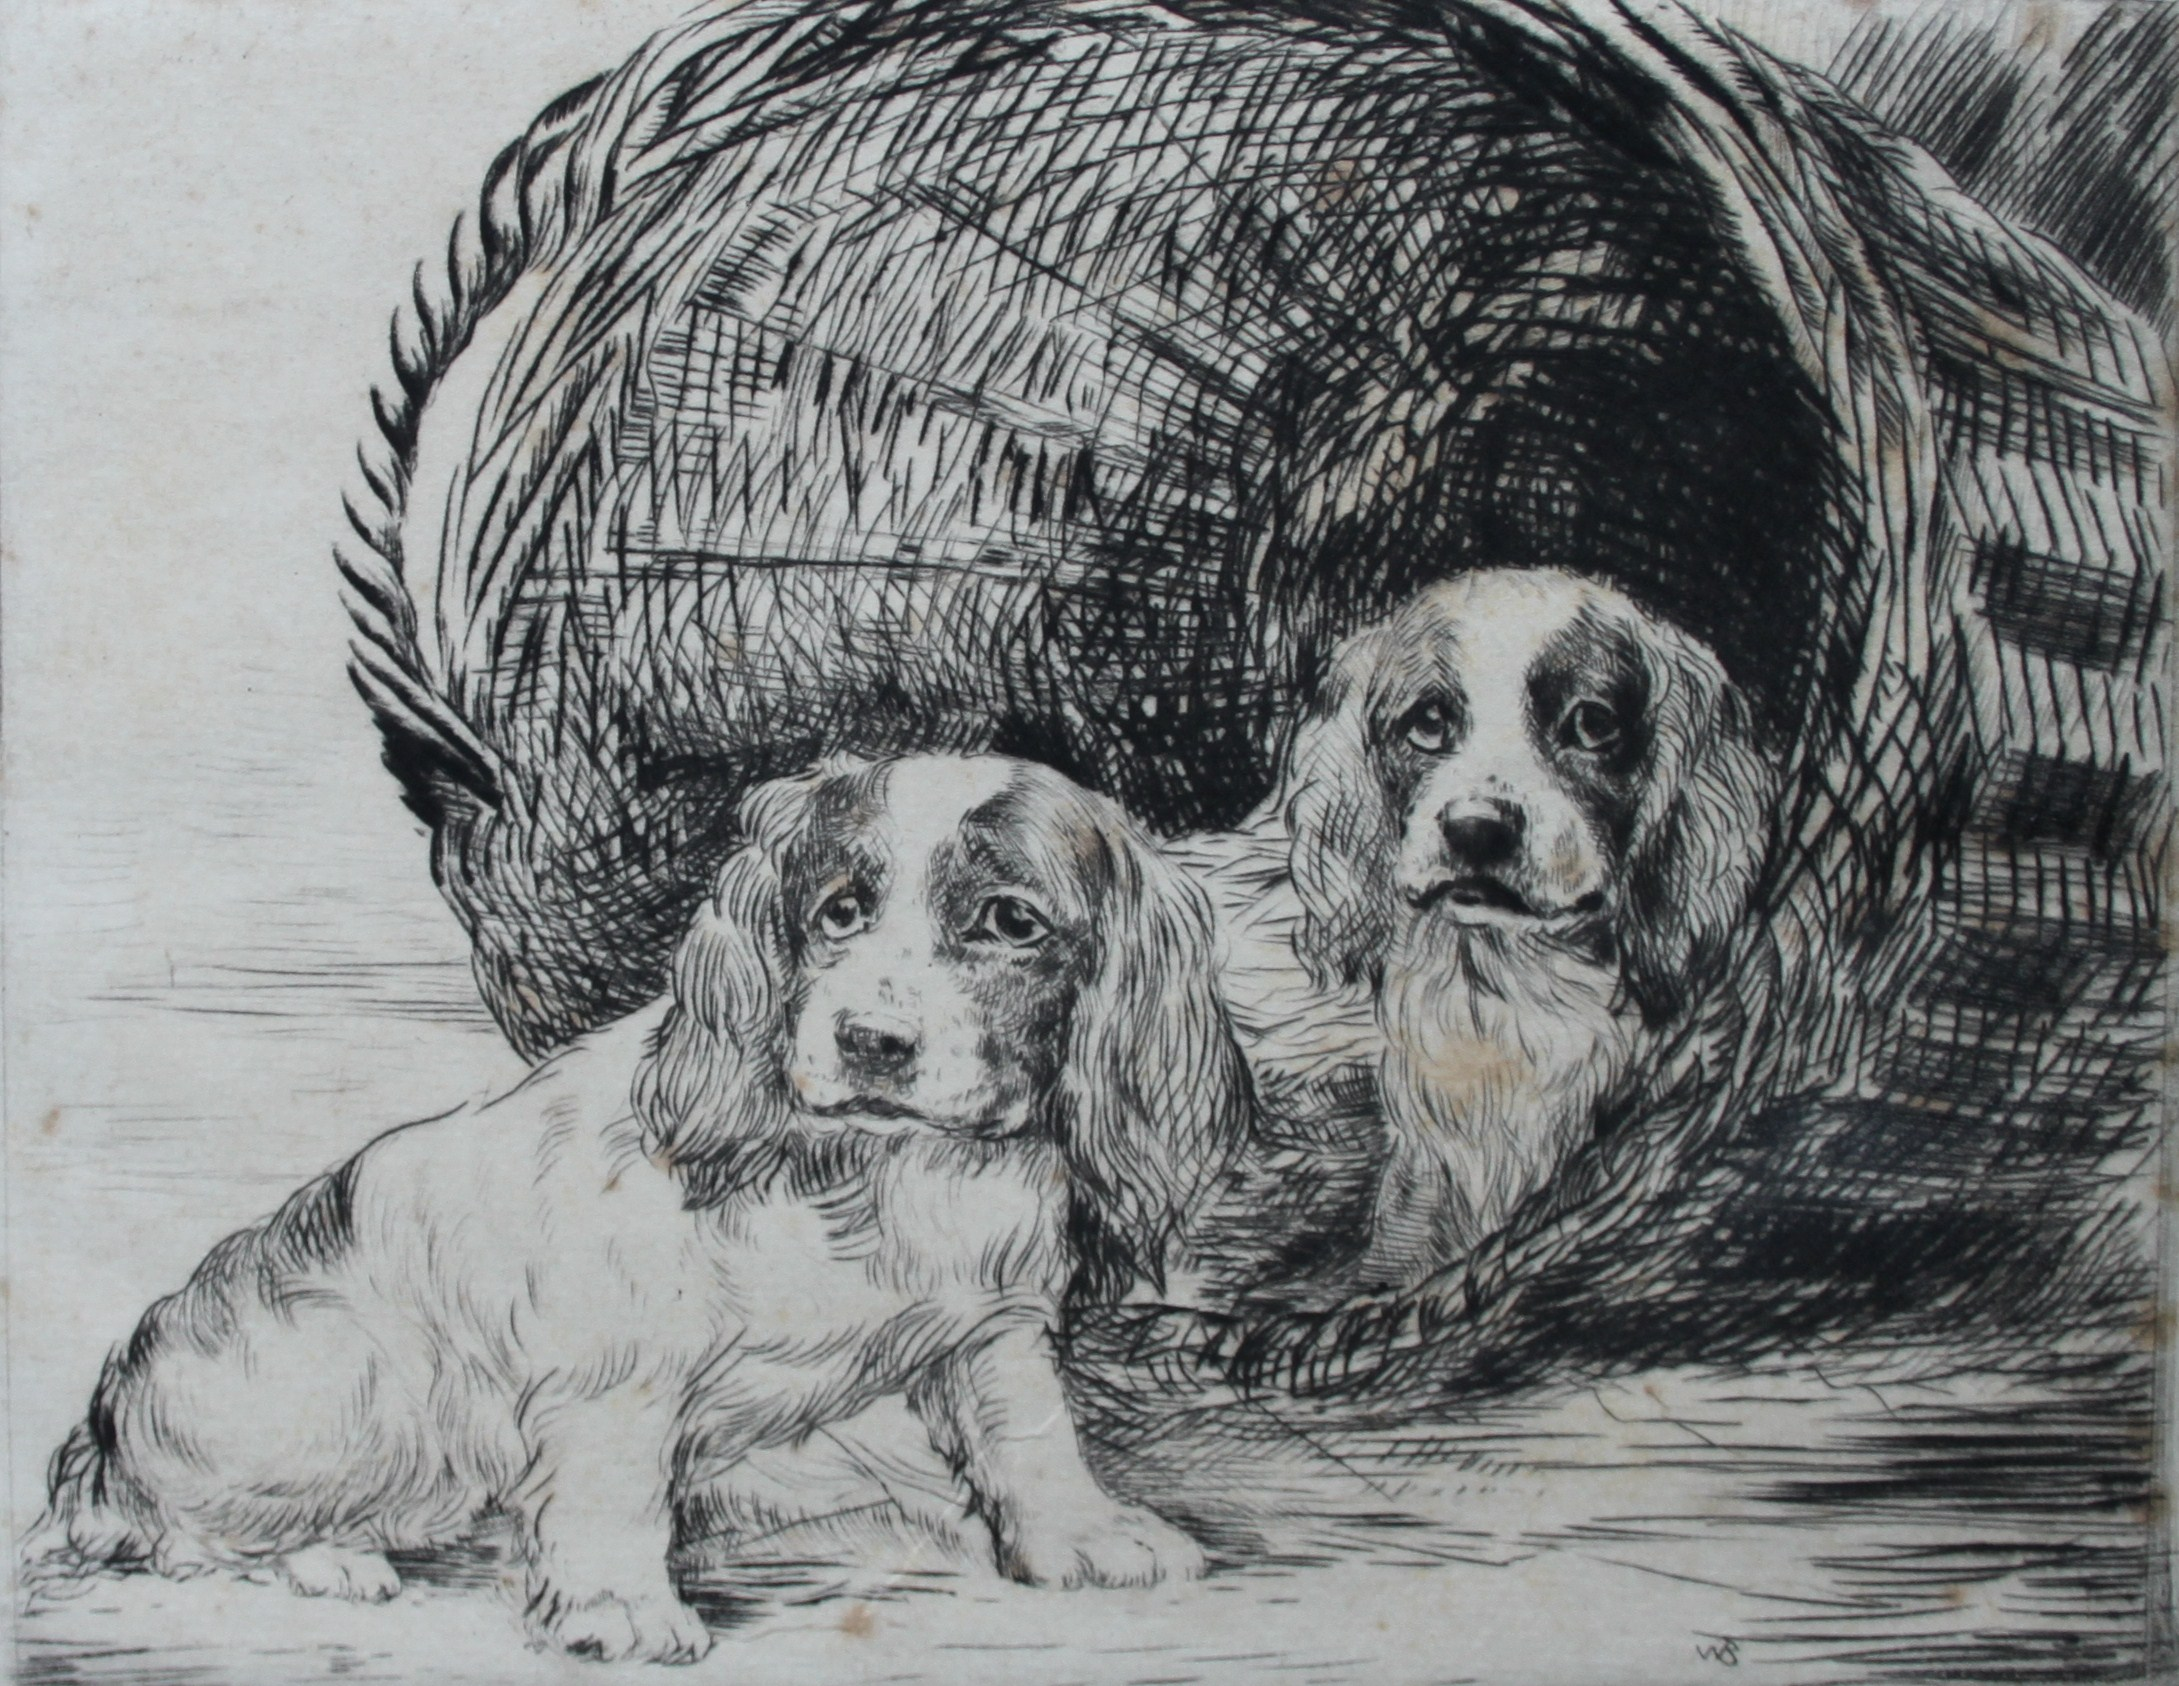 Click to see full size: Springer Spaniel puppies ?Just Arrived? etching by Ruben Ward Binks (1880-1950